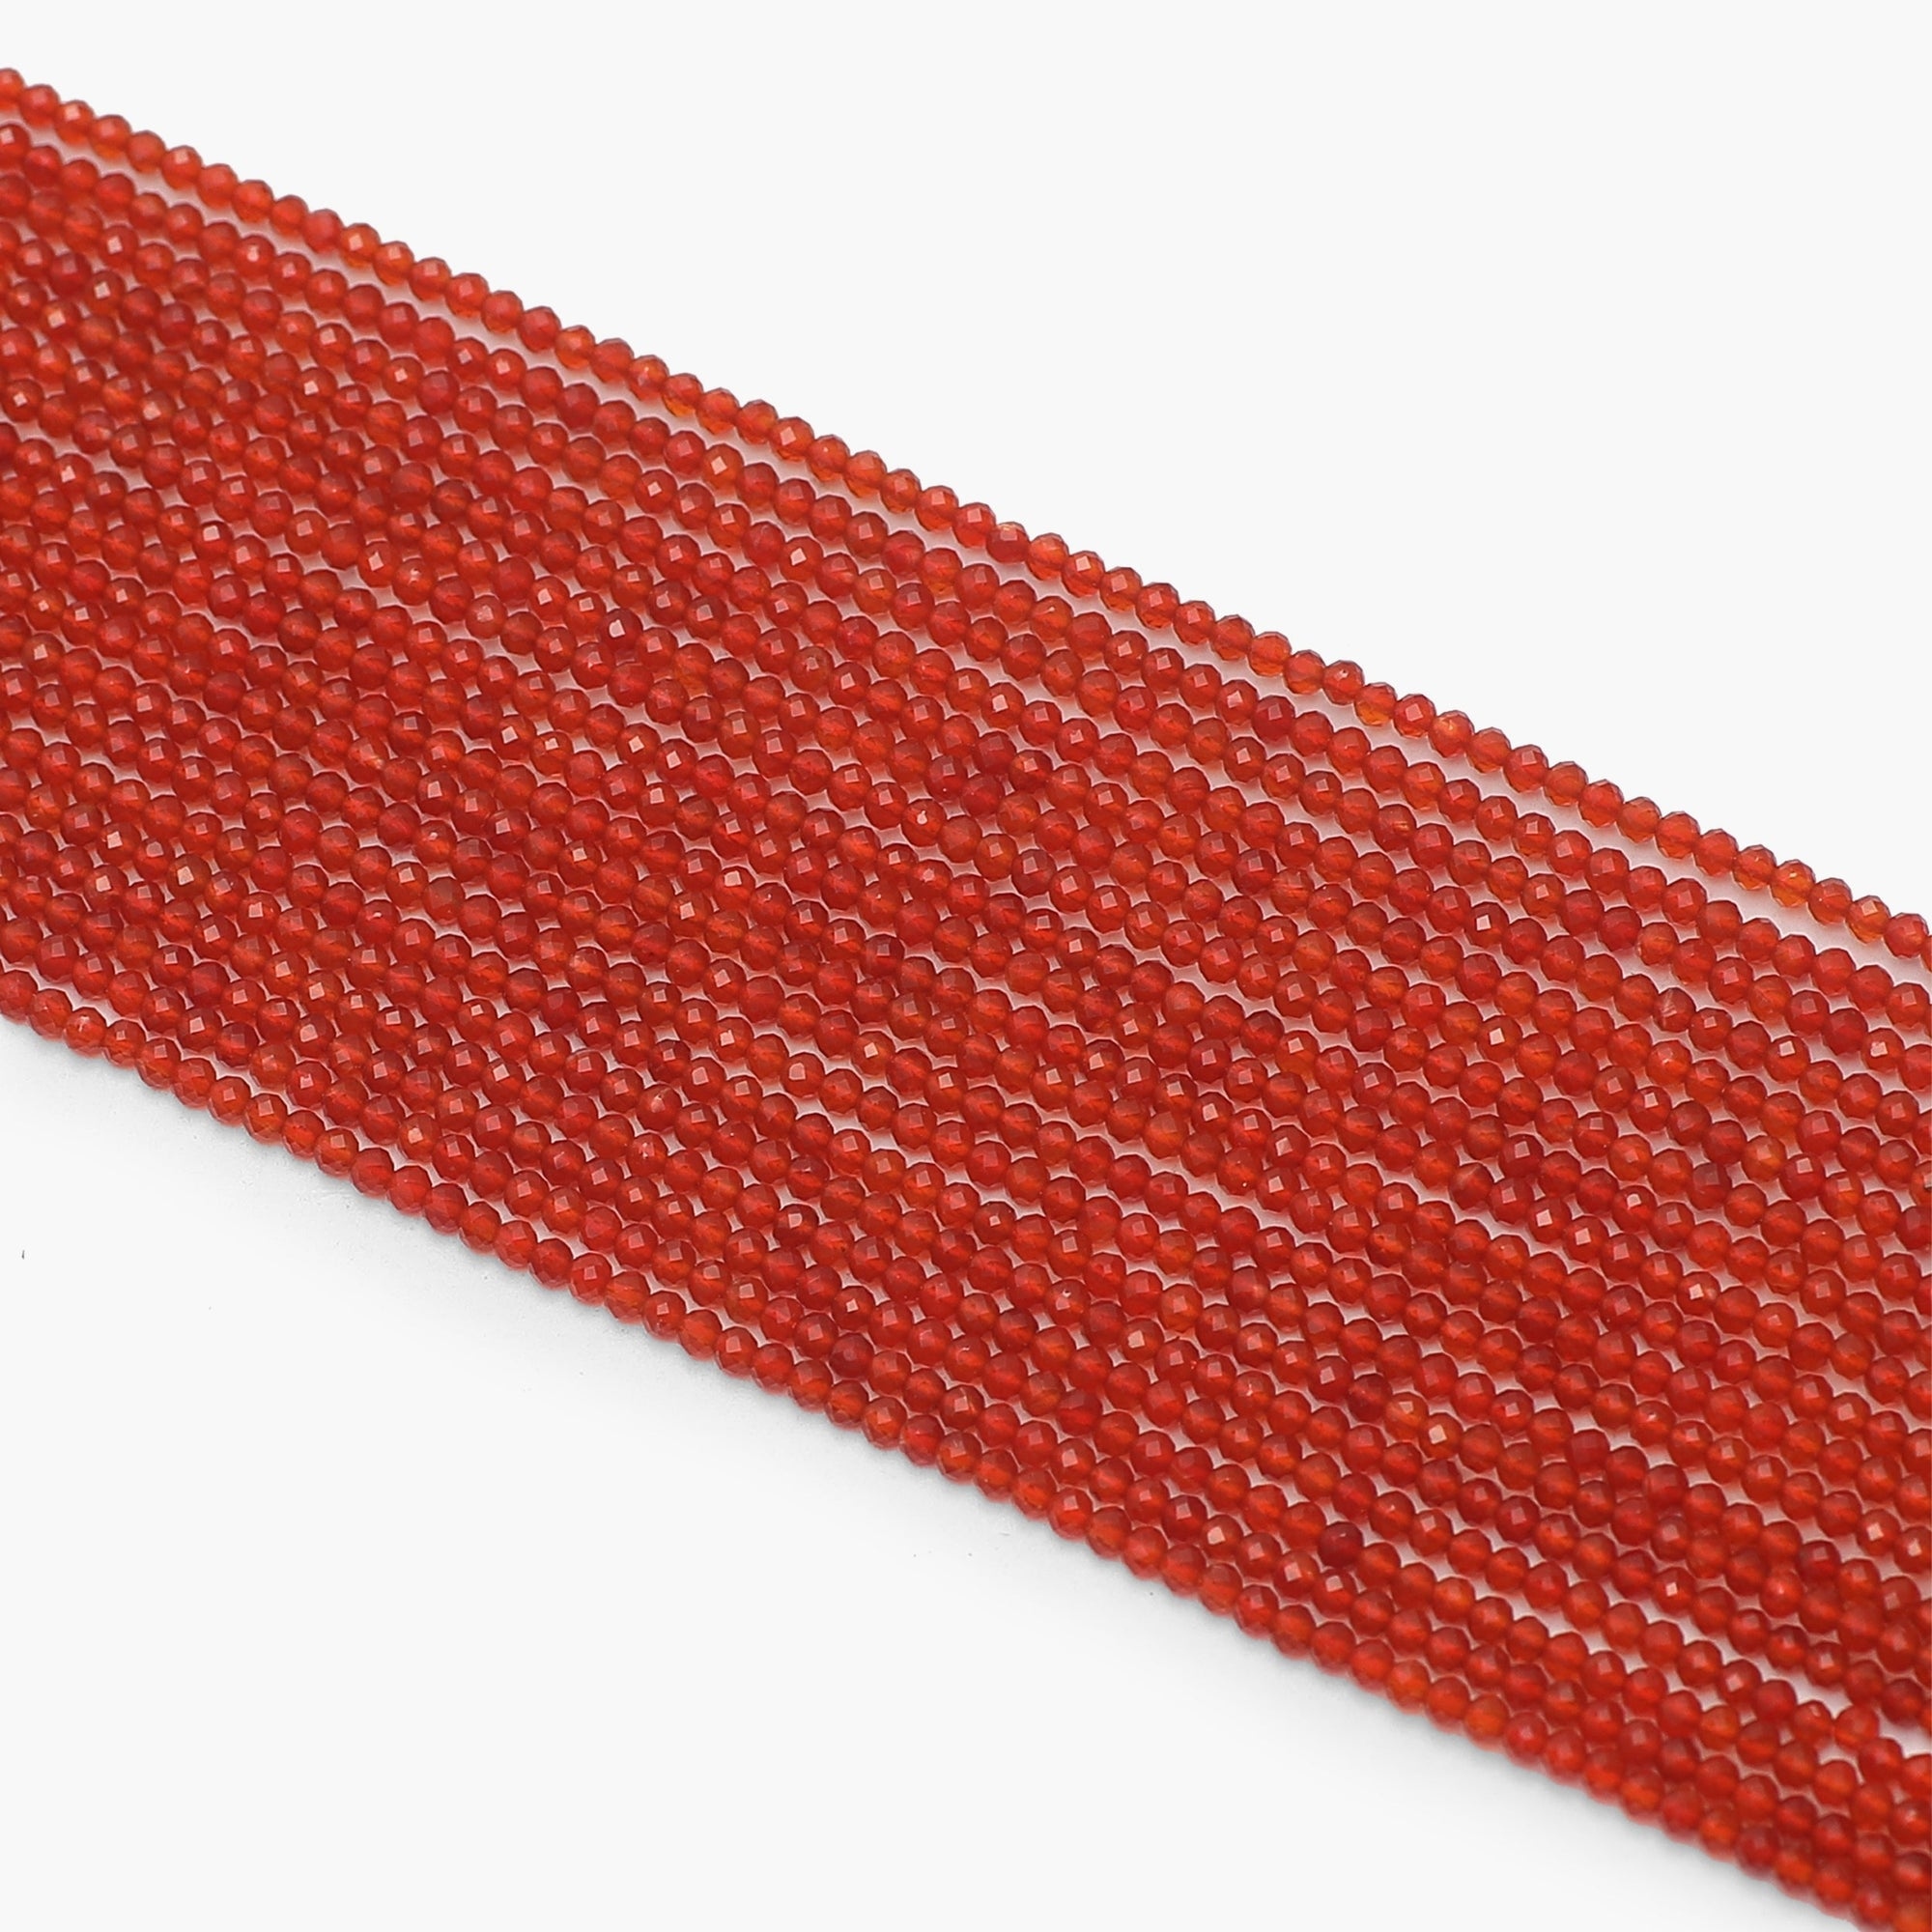 Red Onyx Diamond Cutting Beads-Sold Per Strand